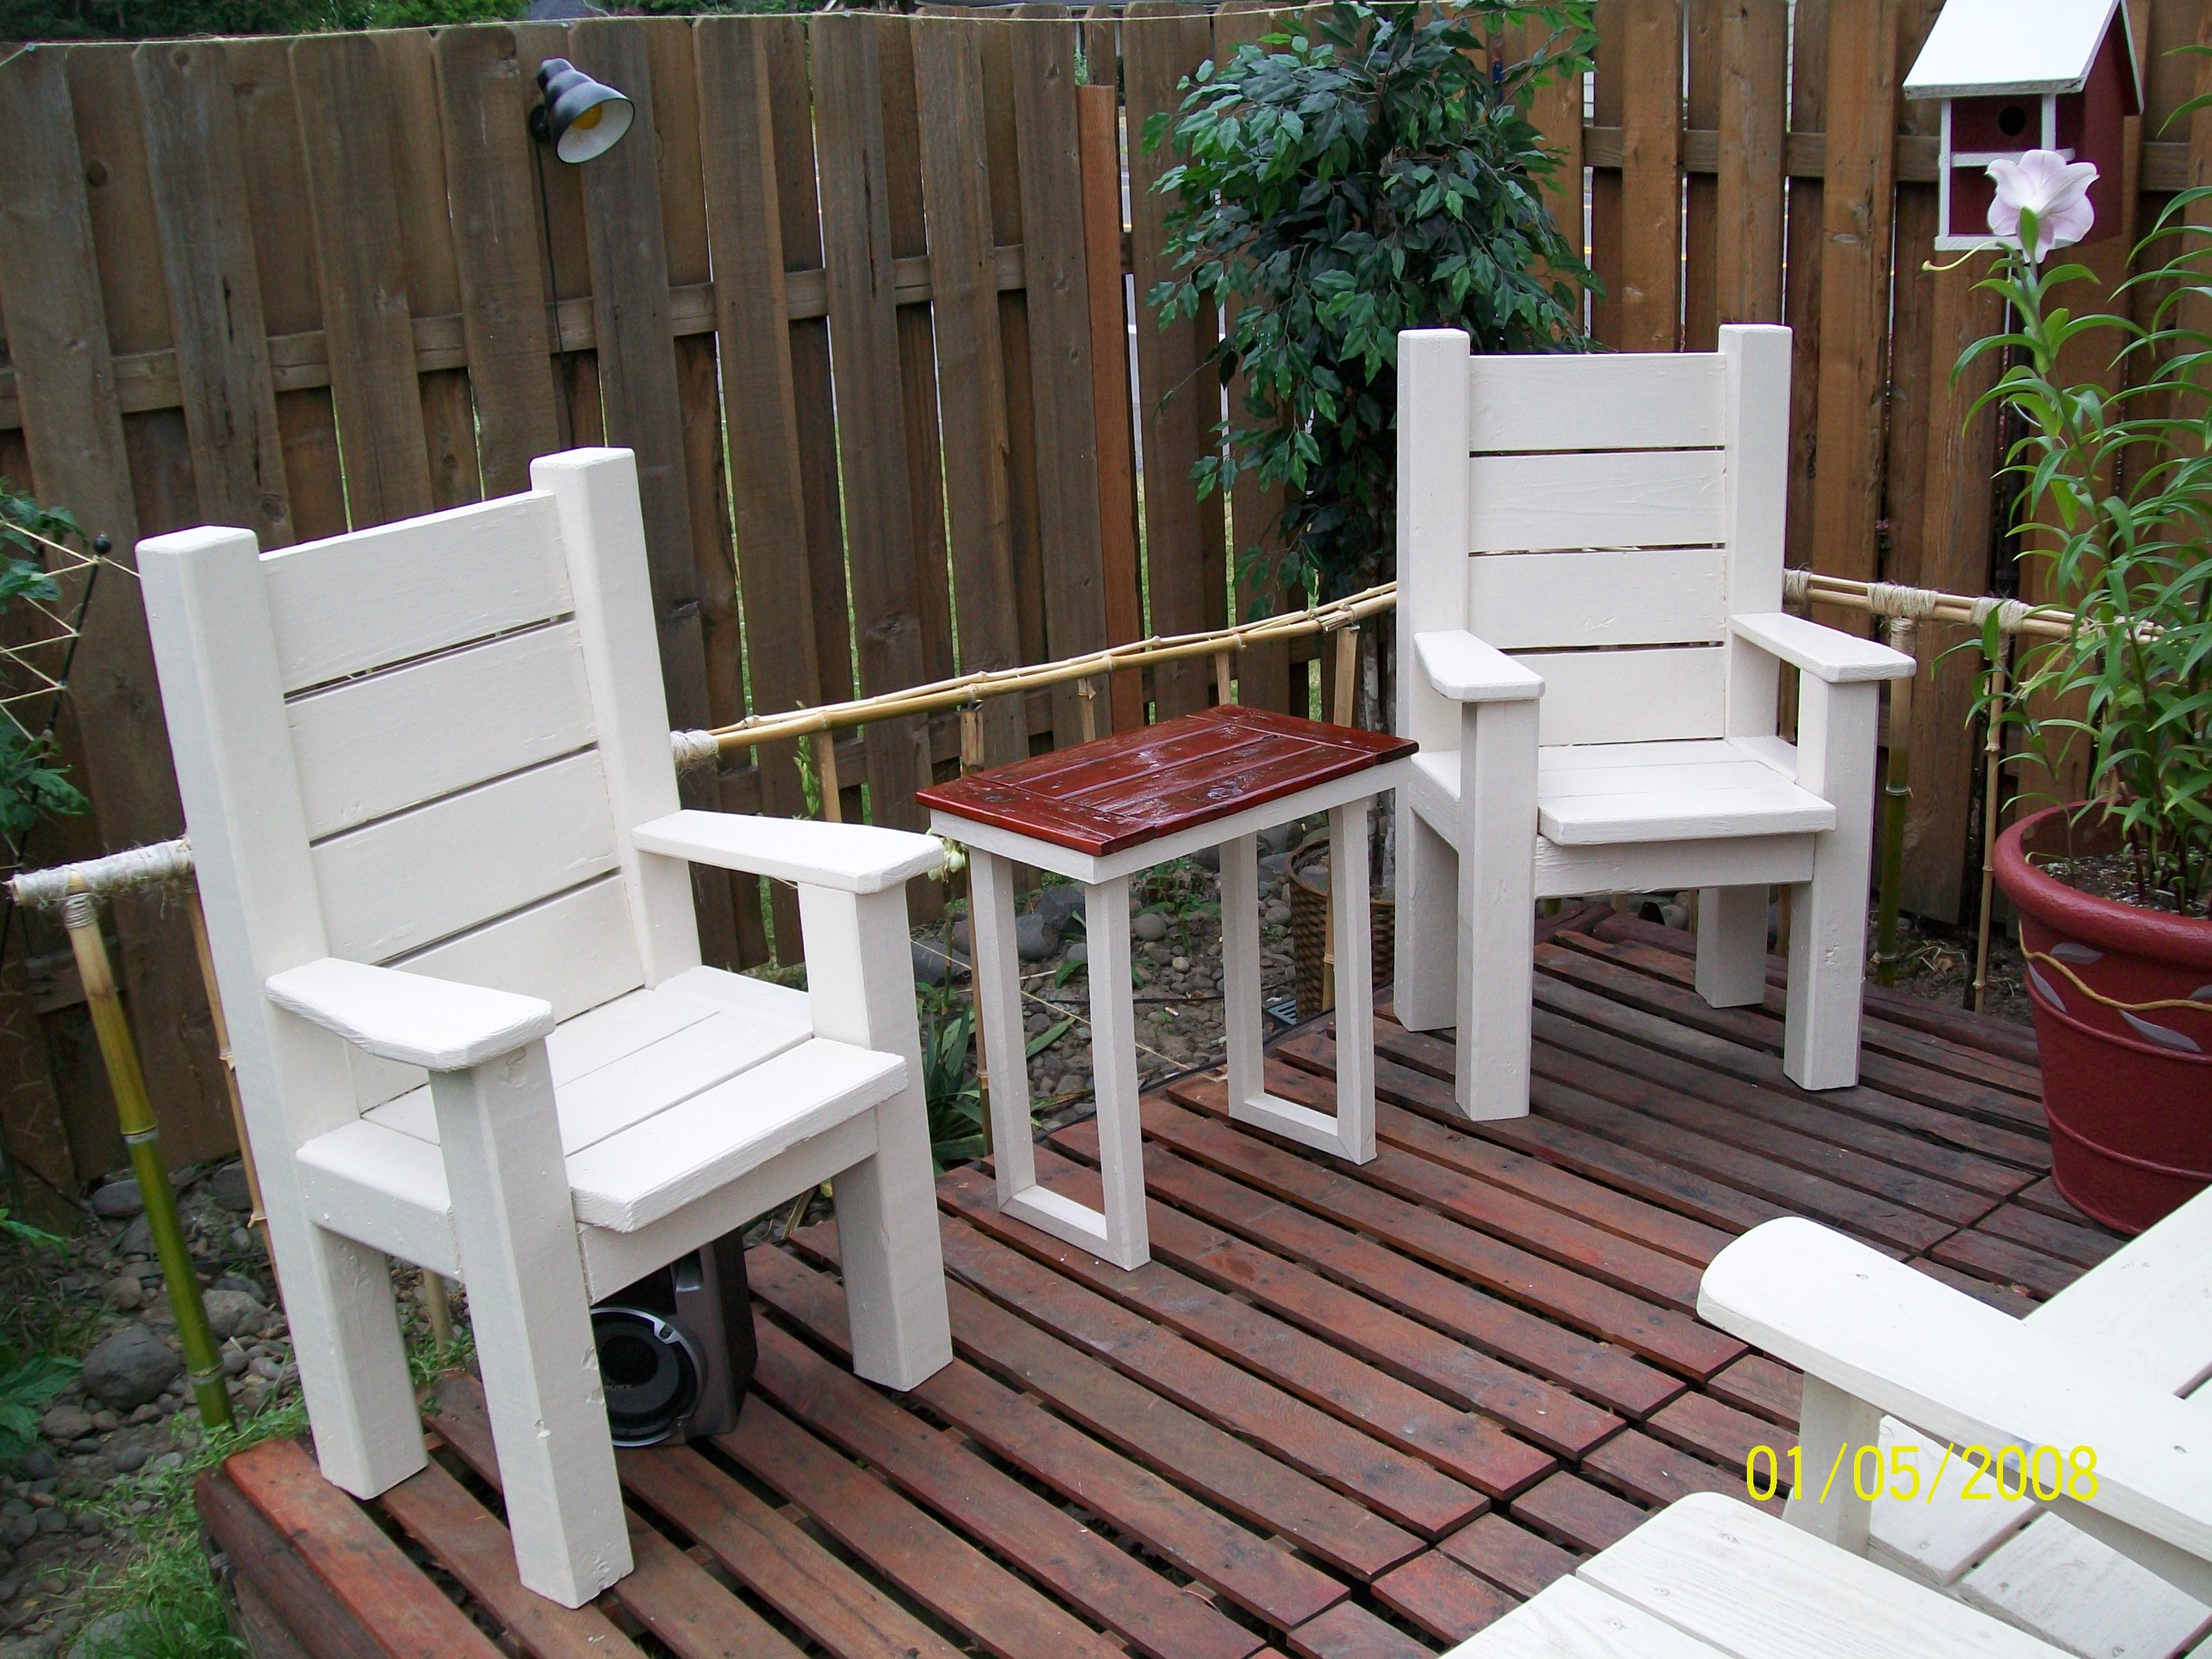 Pallet Chairs Outdoor Decor Outdoor Chairs Pallet Chair